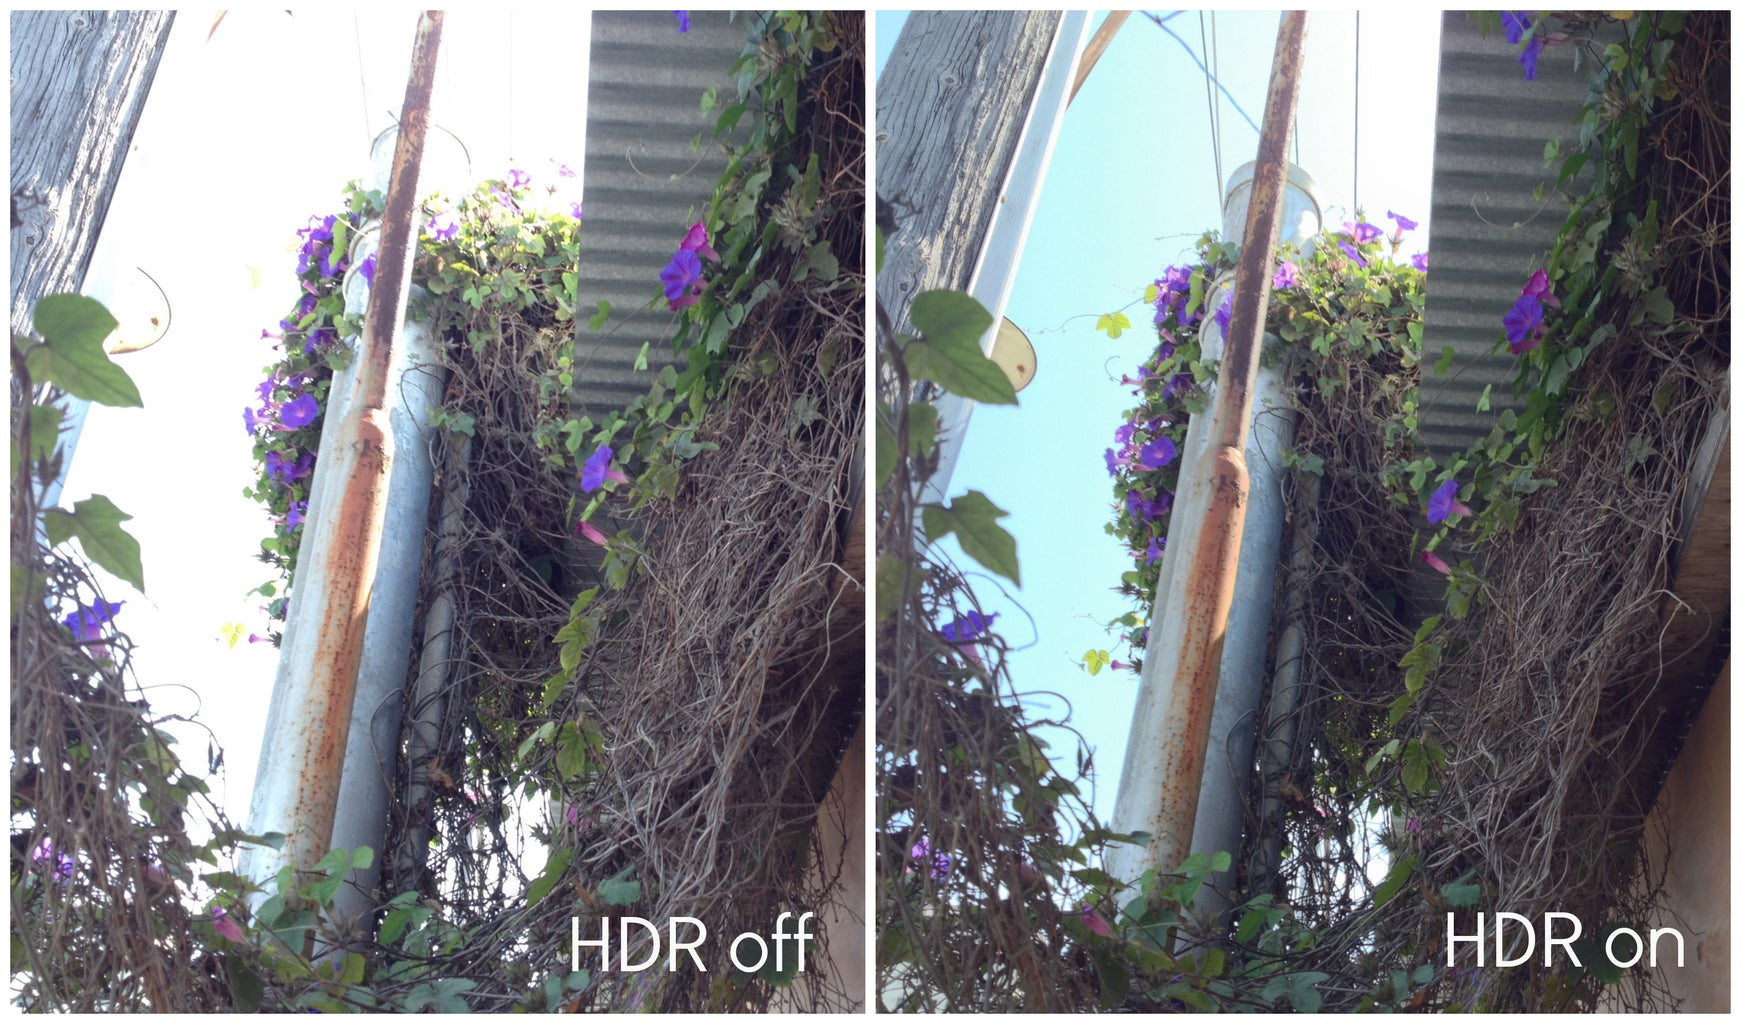 Learn About HDR and Use It!